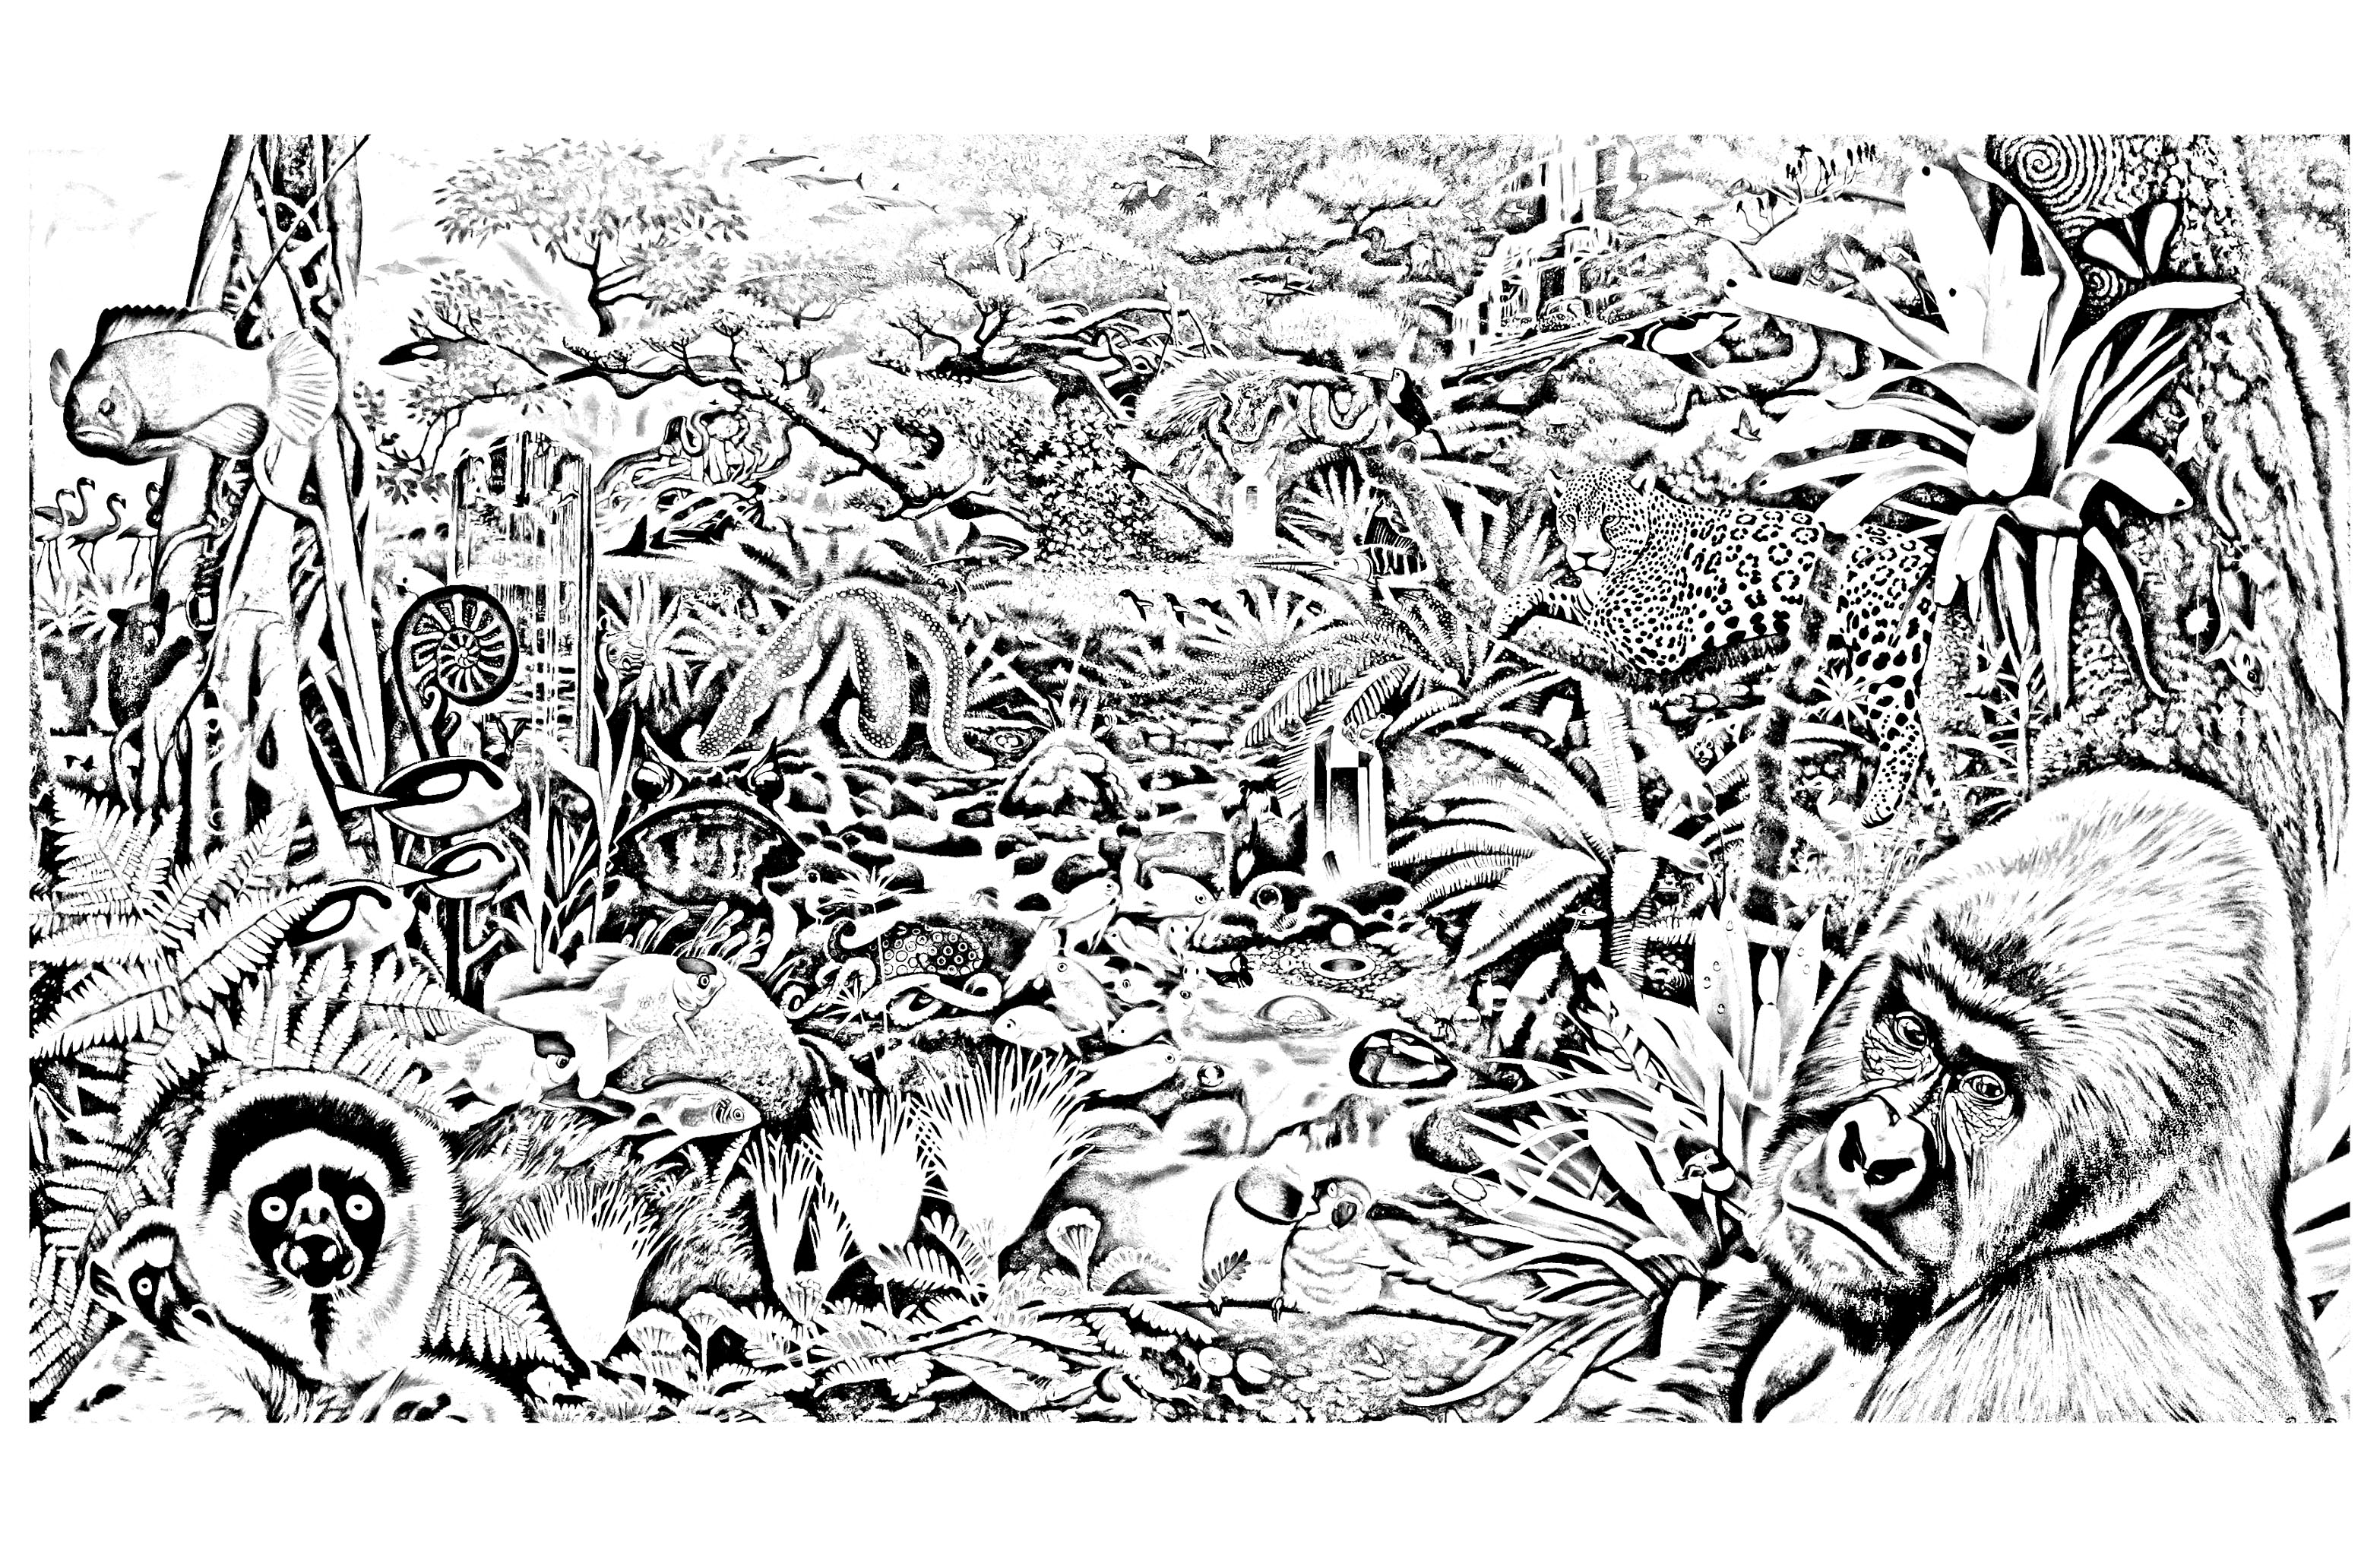 Various animals in a forest, to print and color for free